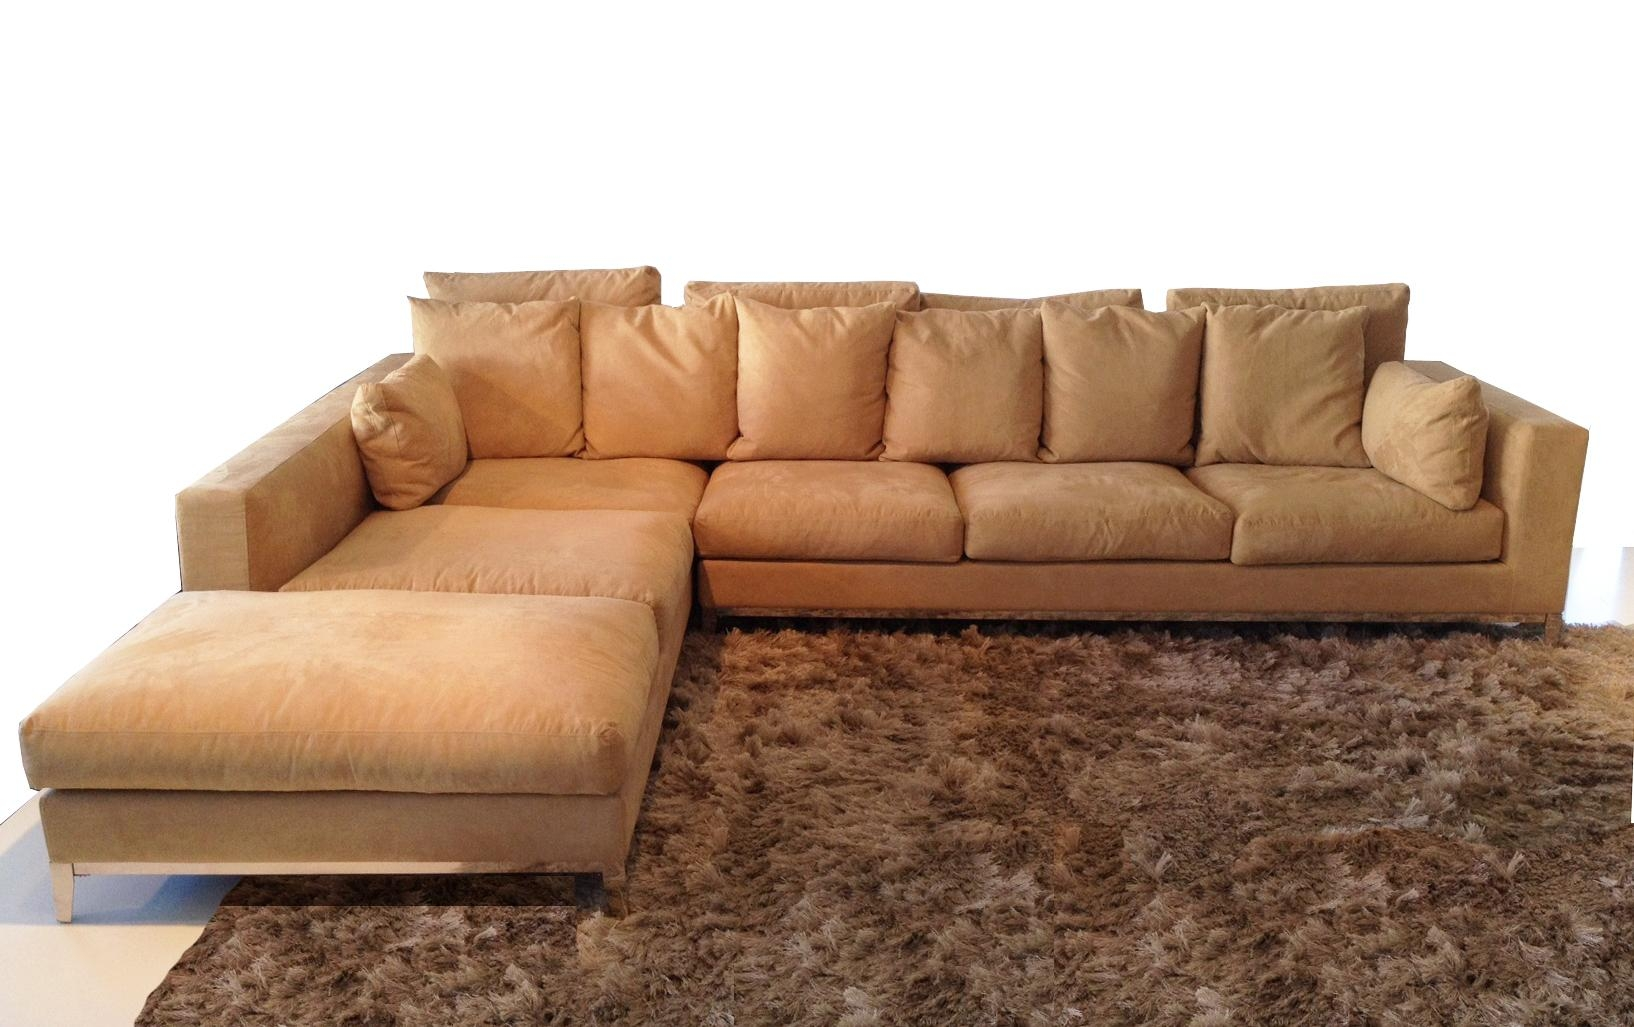 Furniture: Extra Large Sectional Sofa | Modular Sofa Sectional Inside Giant Sofa Beds (View 16 of 20)